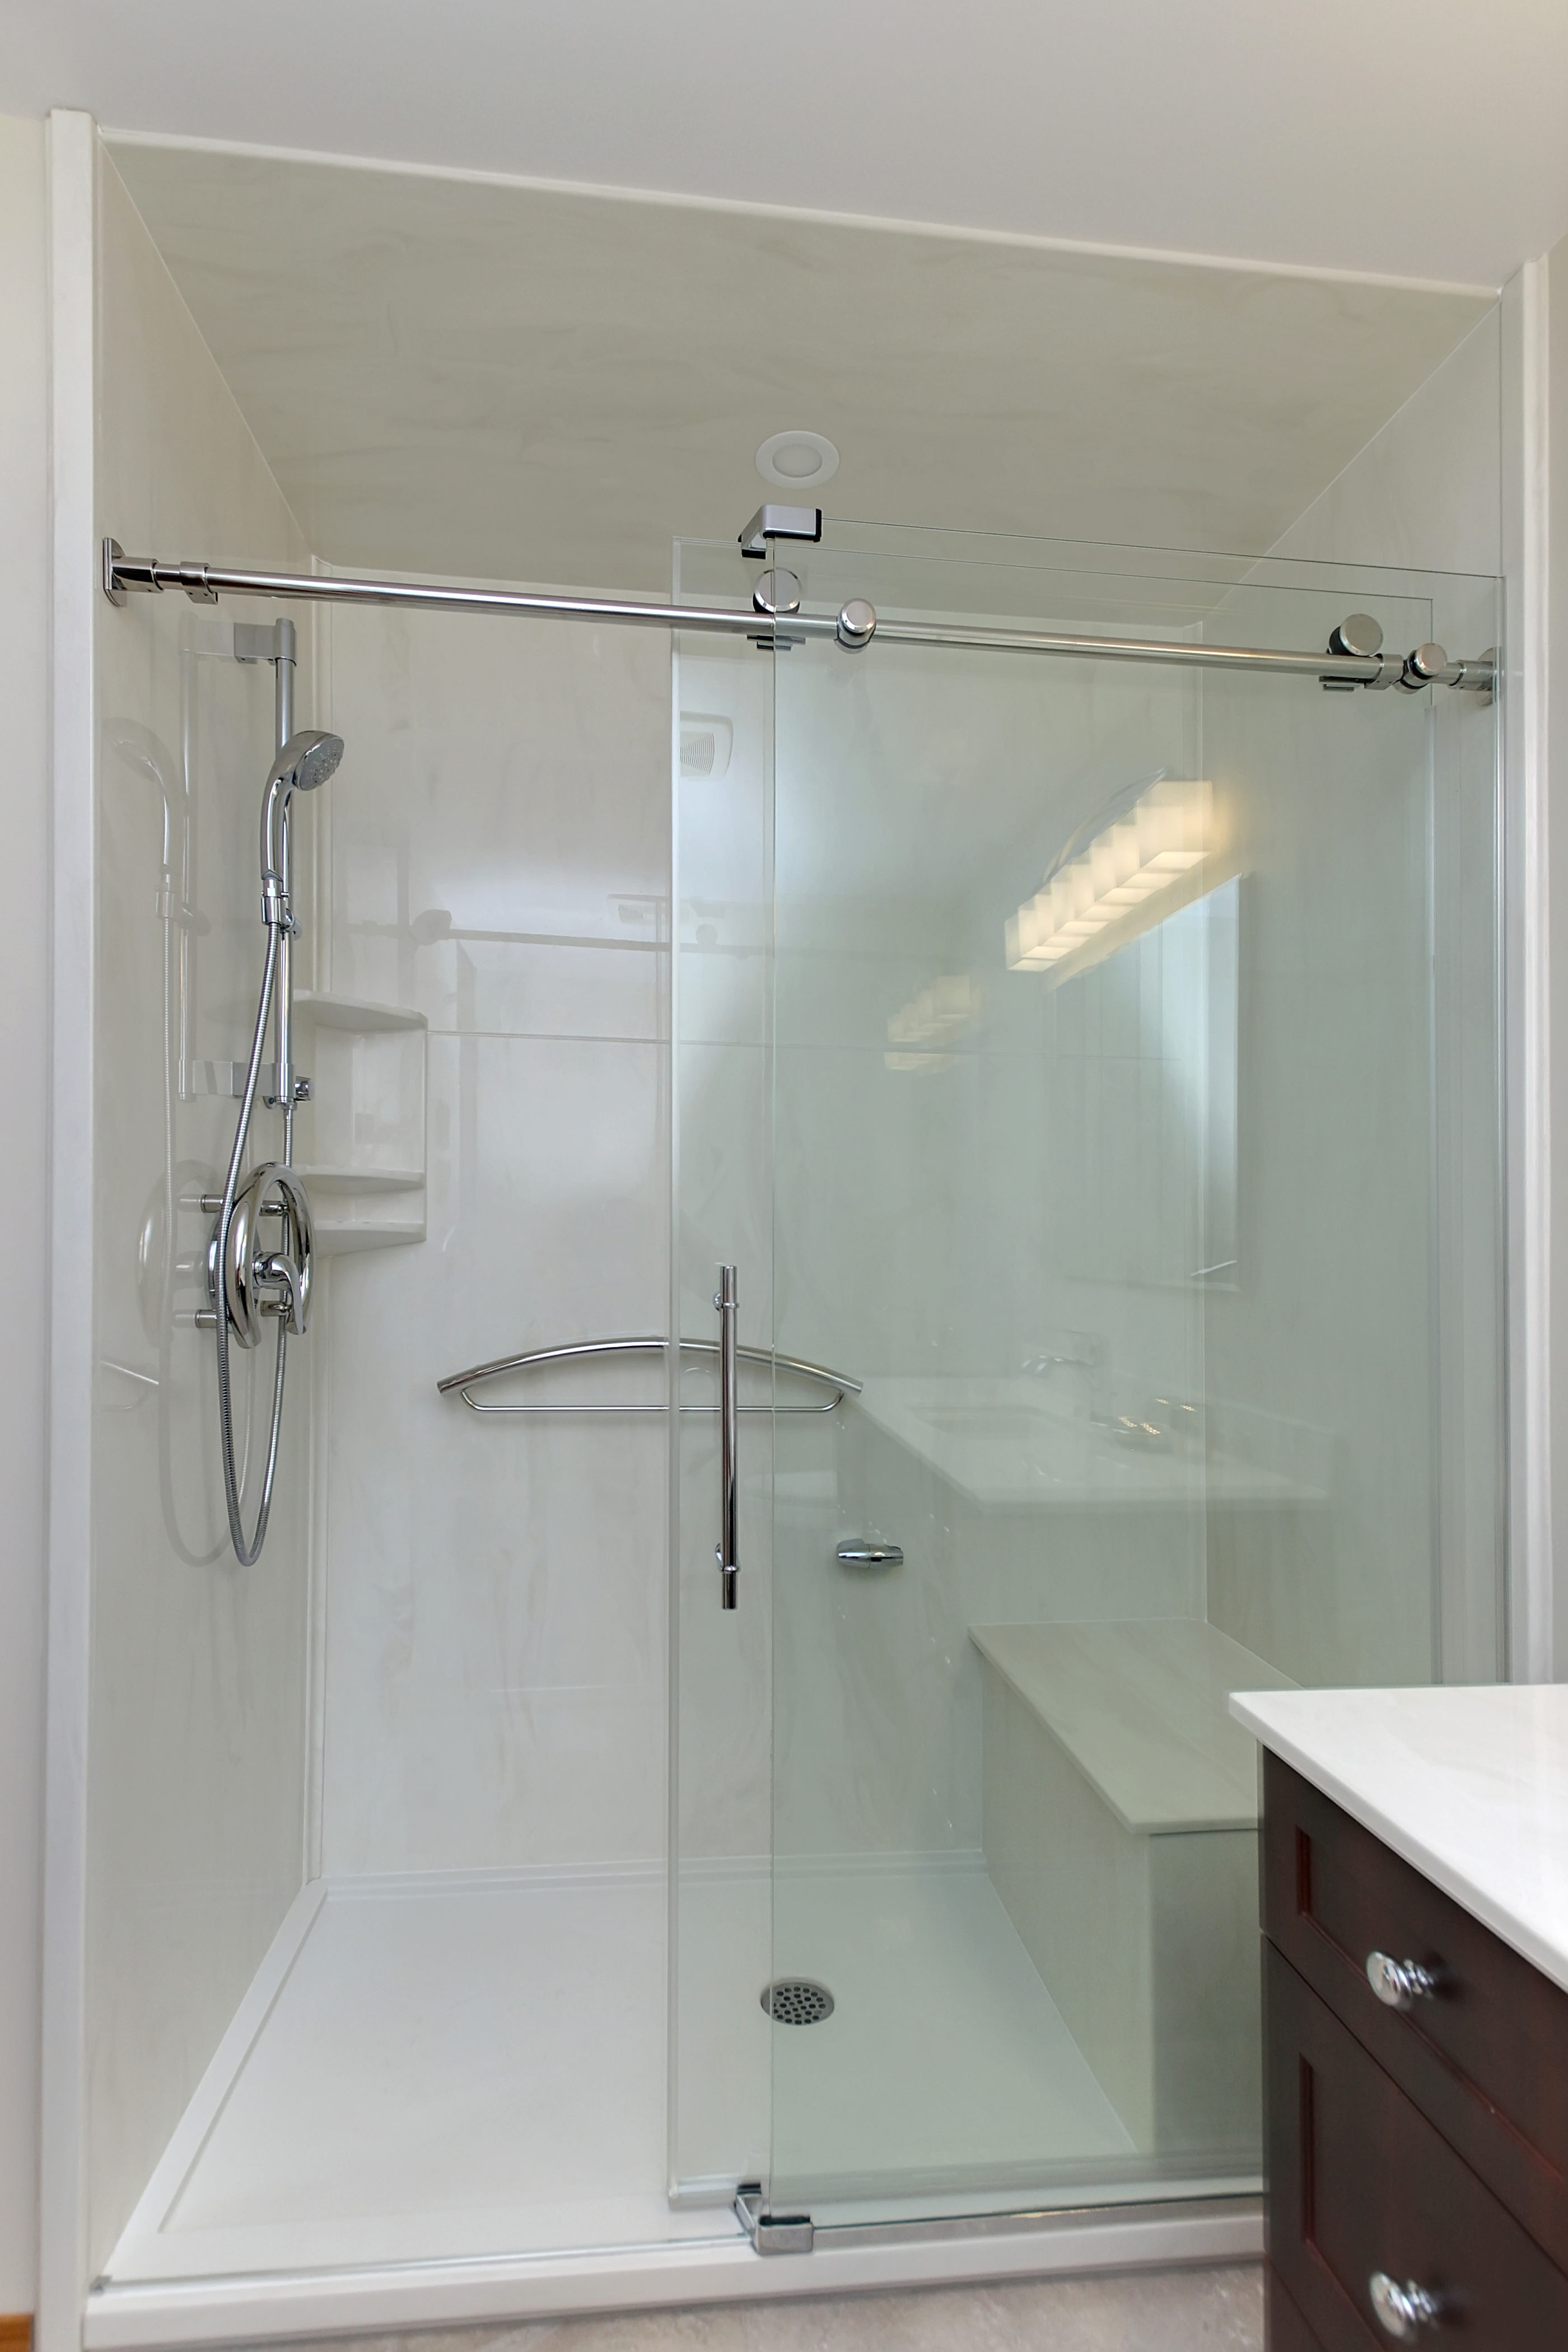 Bathroom Renovation Cost Edmonton Independent Bath and Renovation - picture of renovated shower